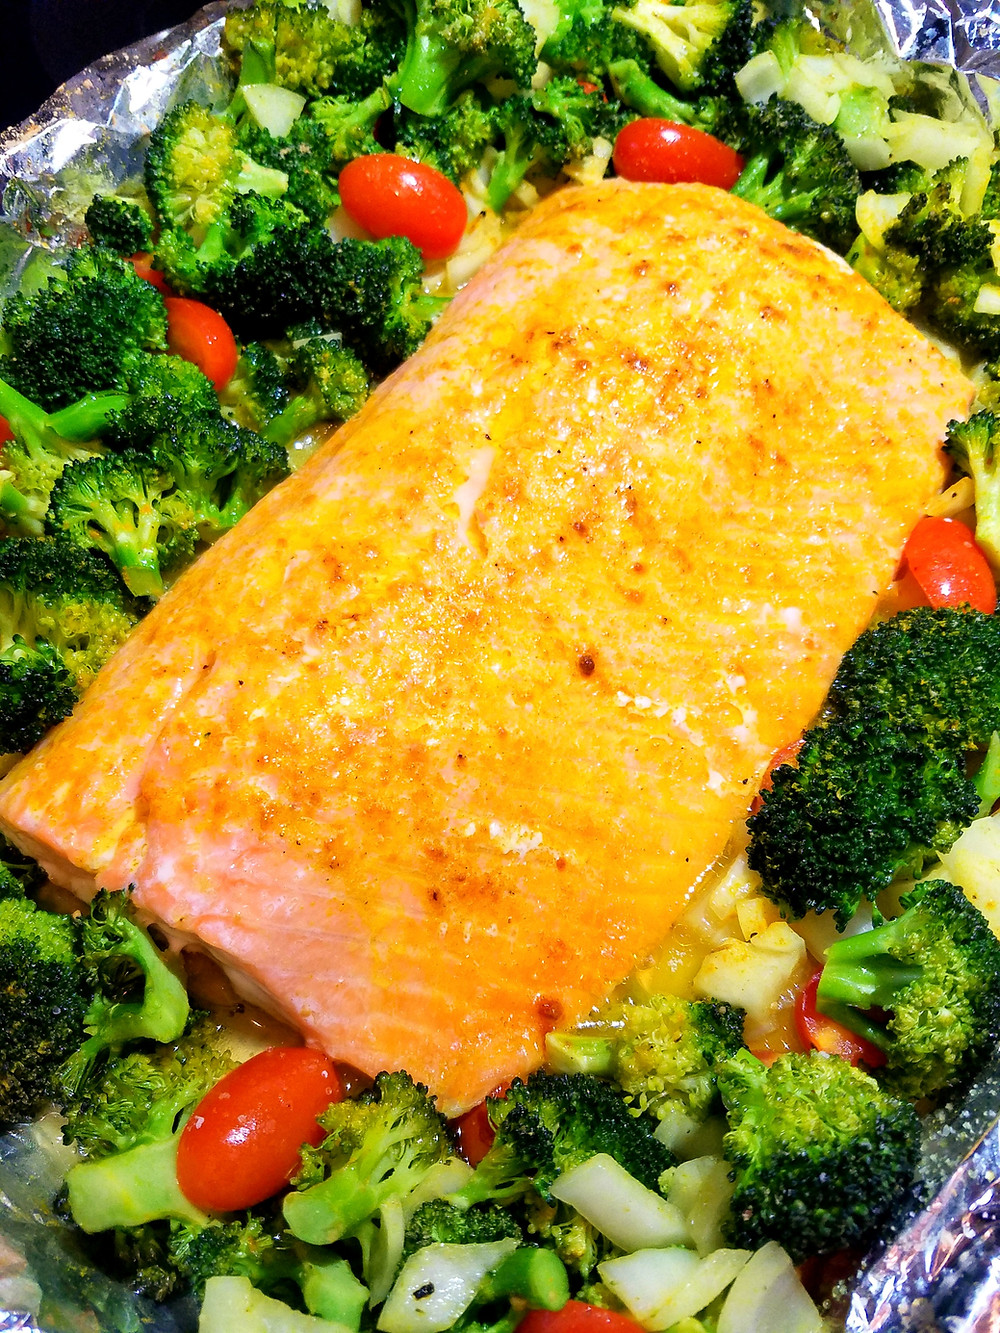 Easy-Peasy One-Pan Salmon and Broccoli. Gluten-free, soy-free, dairy-free, grain-free